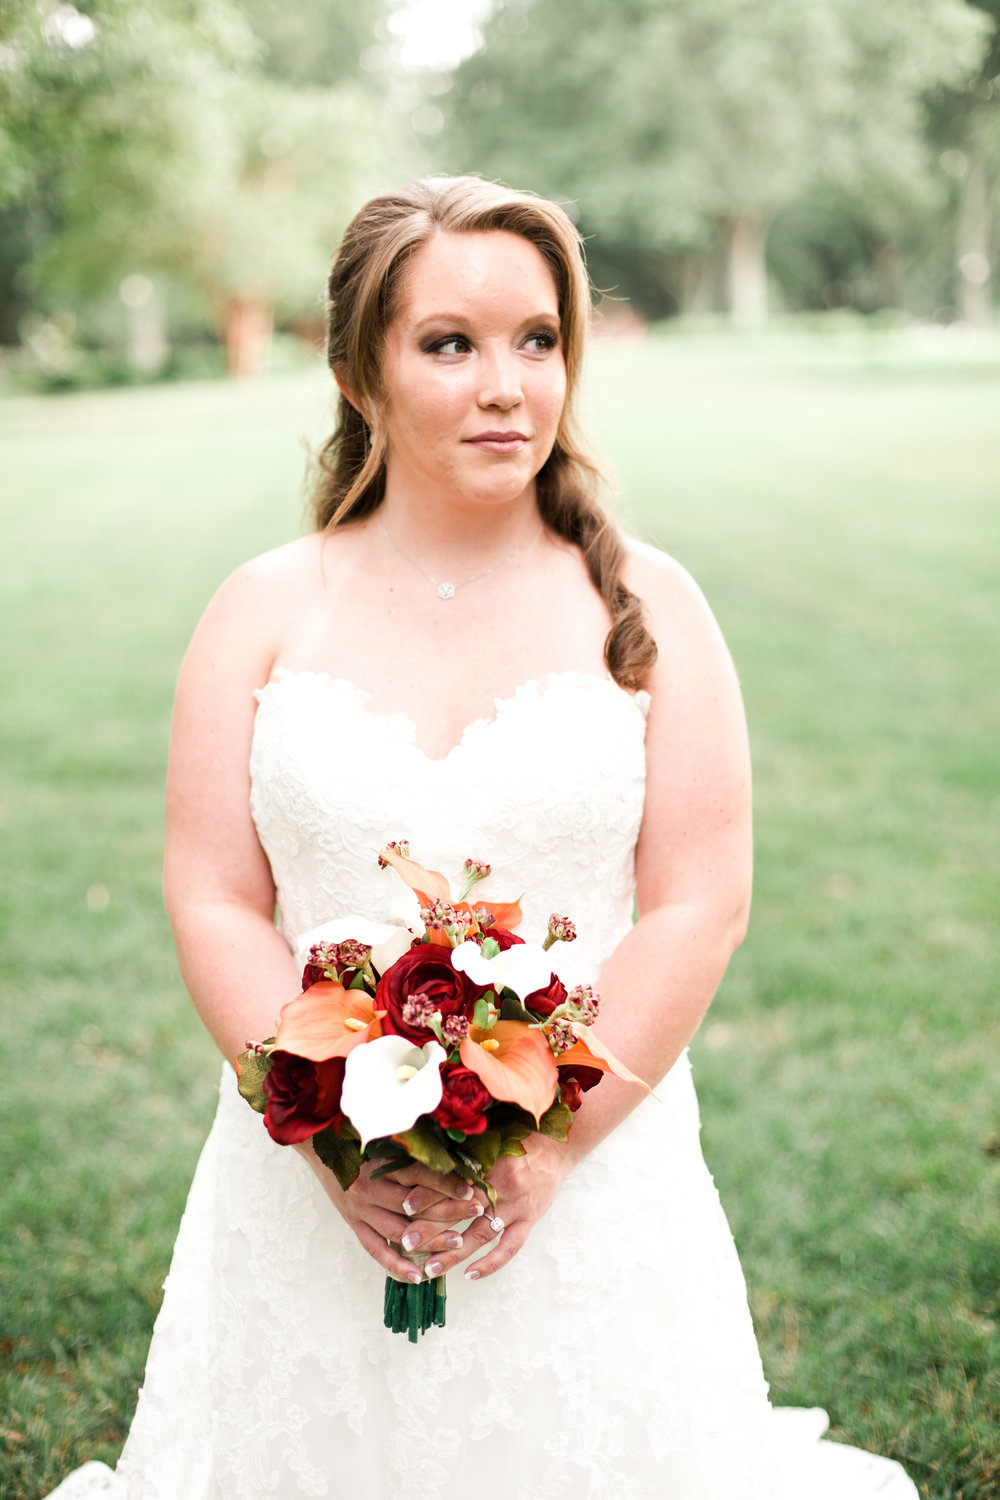 gabbie_bridal_poured_out_photography-35.jpg